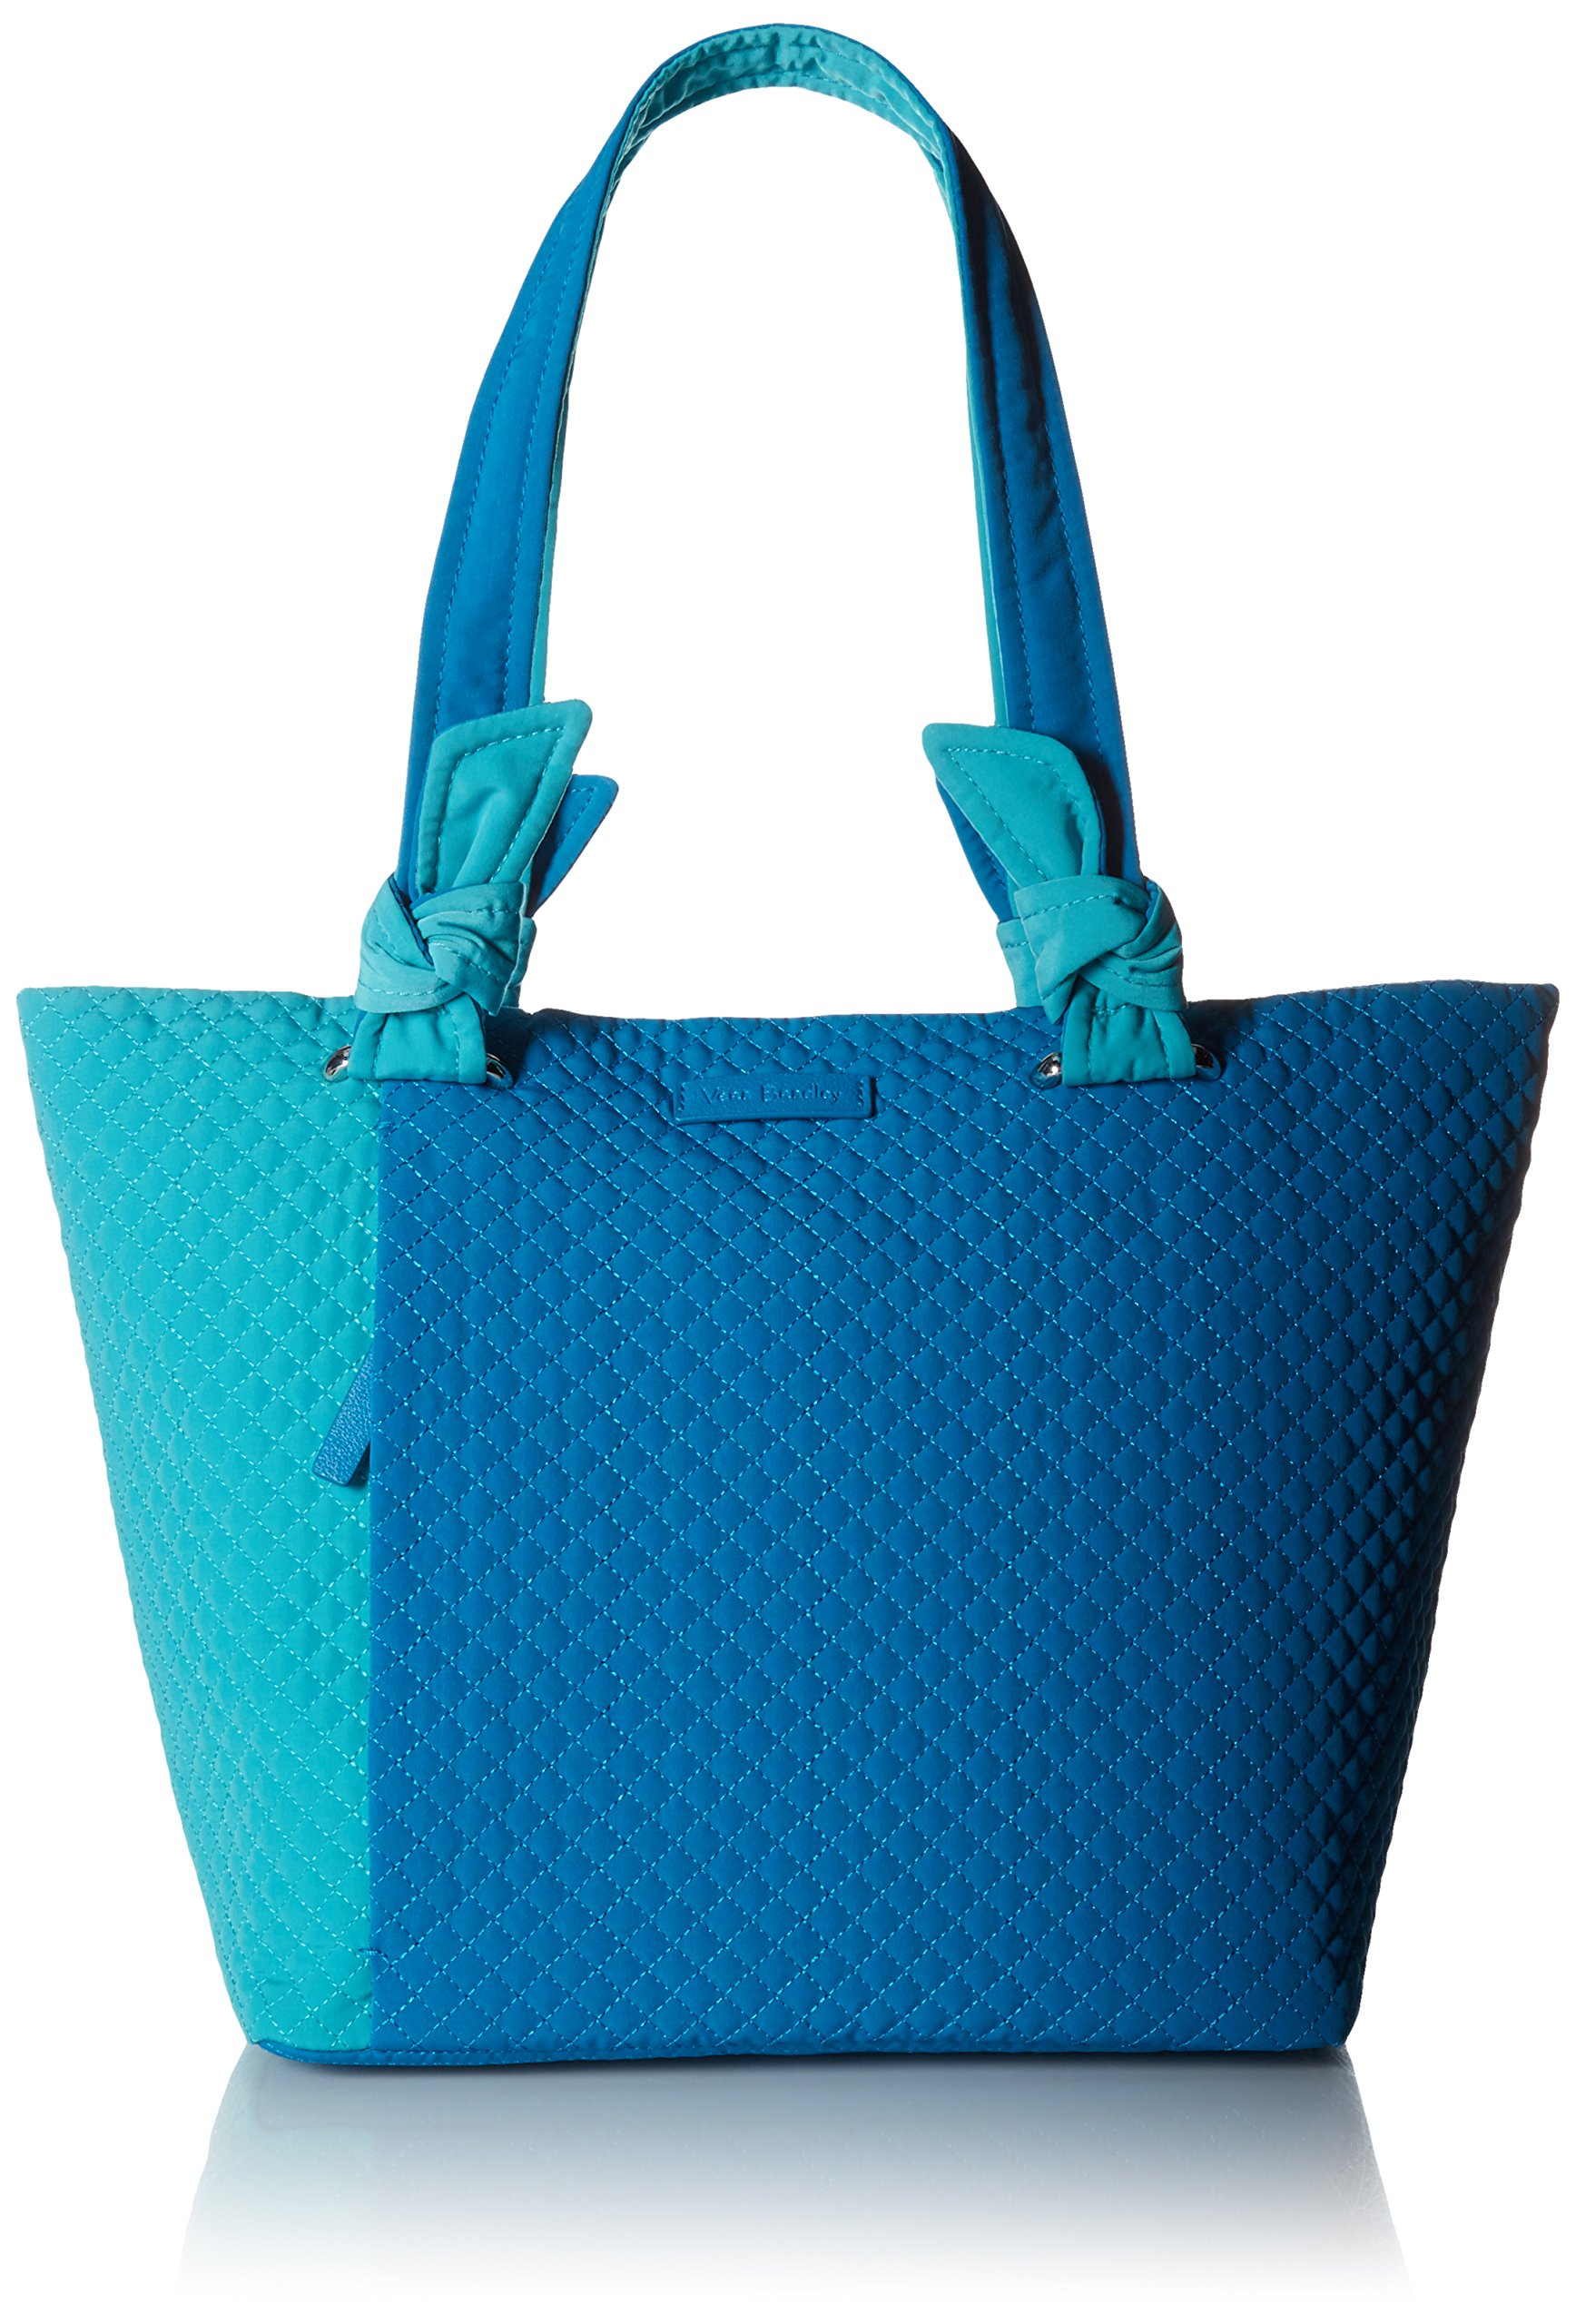 Vera Bradley Hadley East West Tote, Microfiber, Bahama Bay and Turquoise Sea